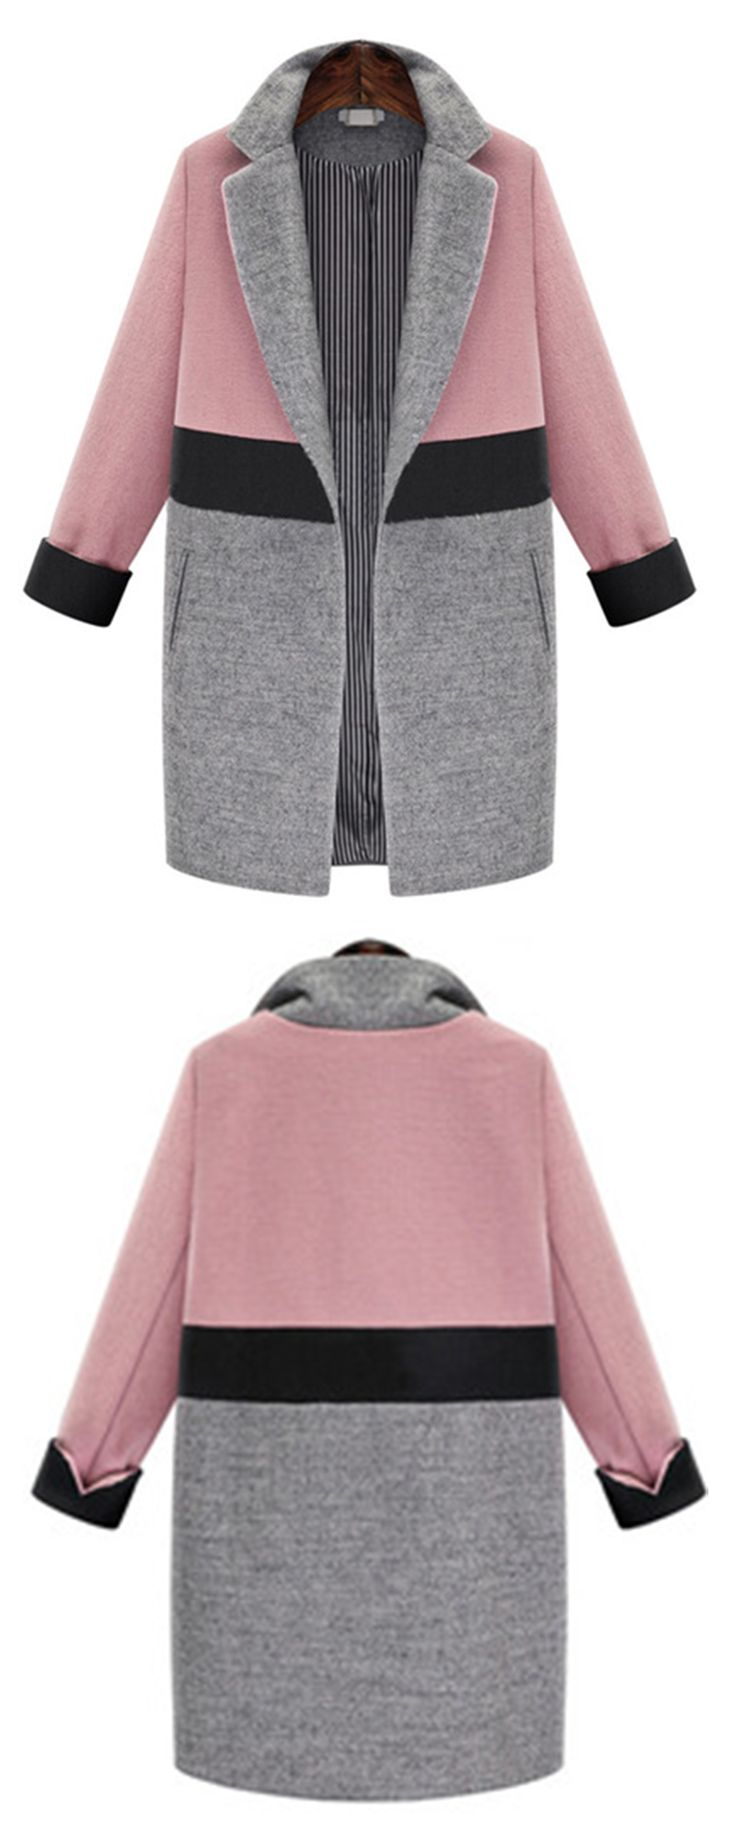 Cant wait to wear this gorgeous Pink Grey Lapel Pockets Woolen Coat when the days turn cool and crisp.